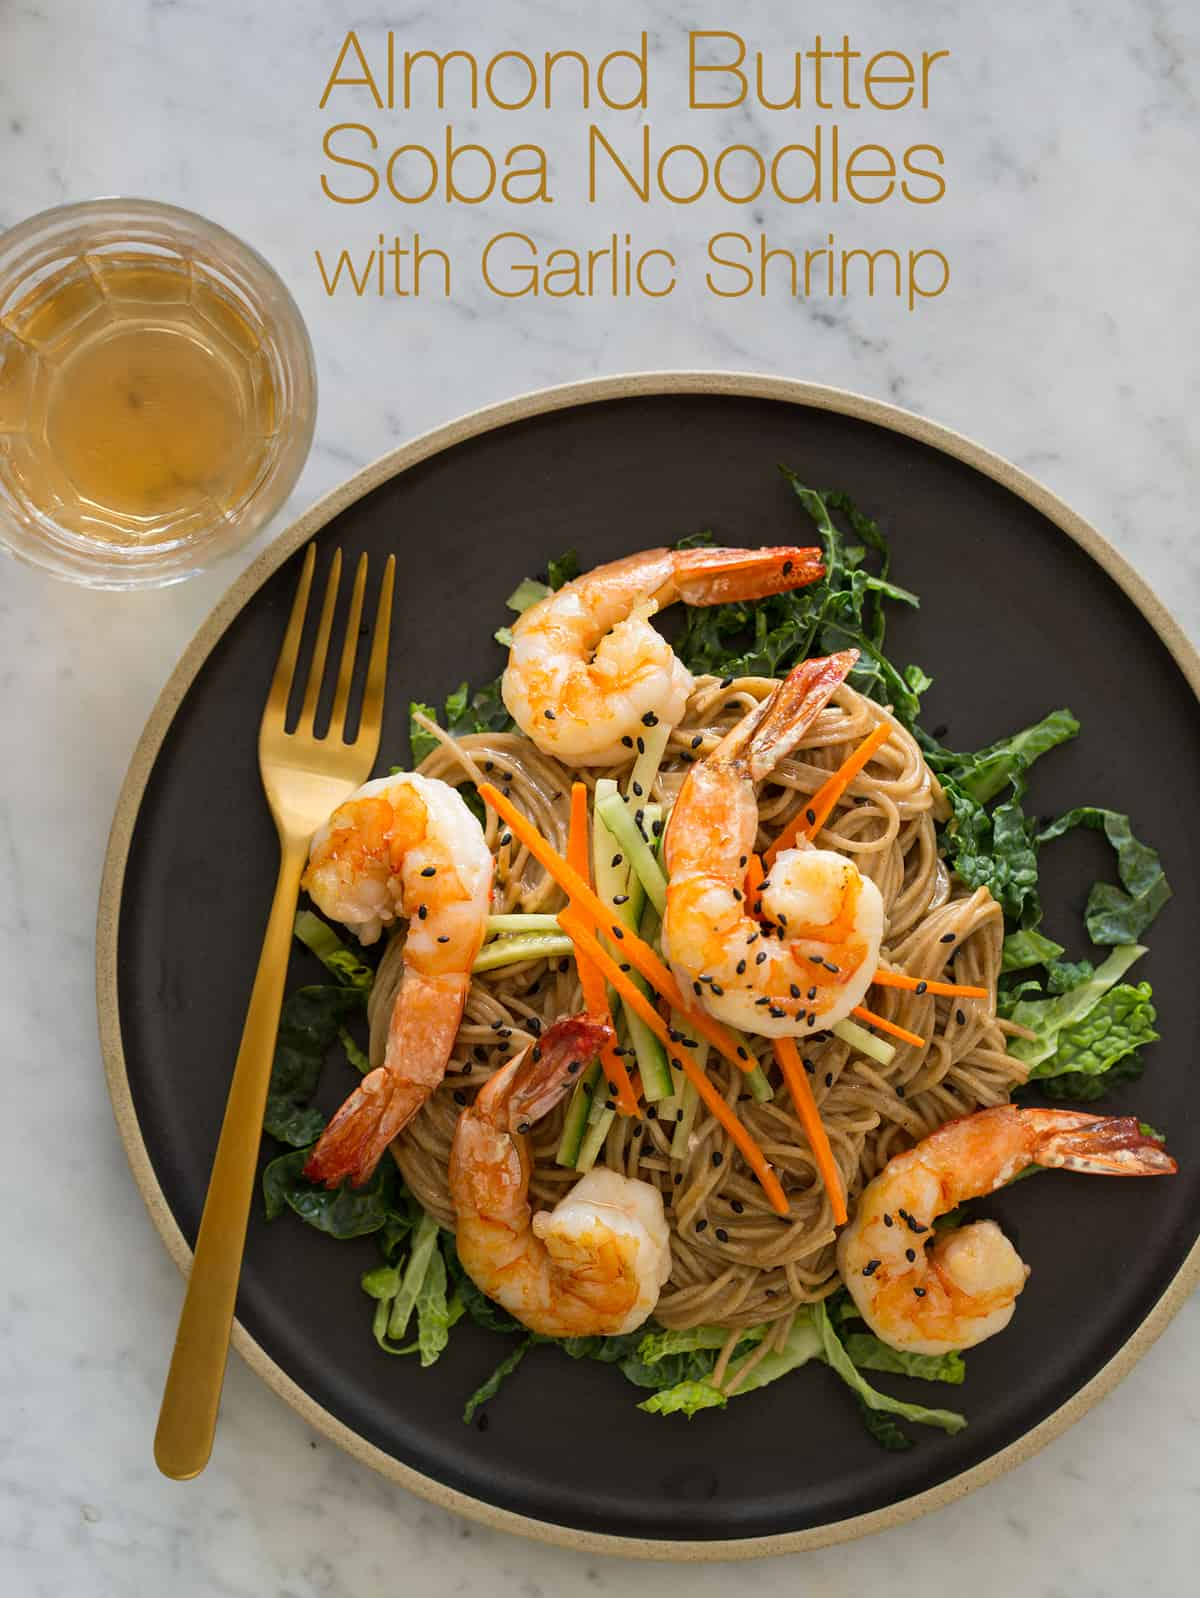 Almond Butter Soba Noodles with Garlic Shrimp | Spoon Fork Bacon